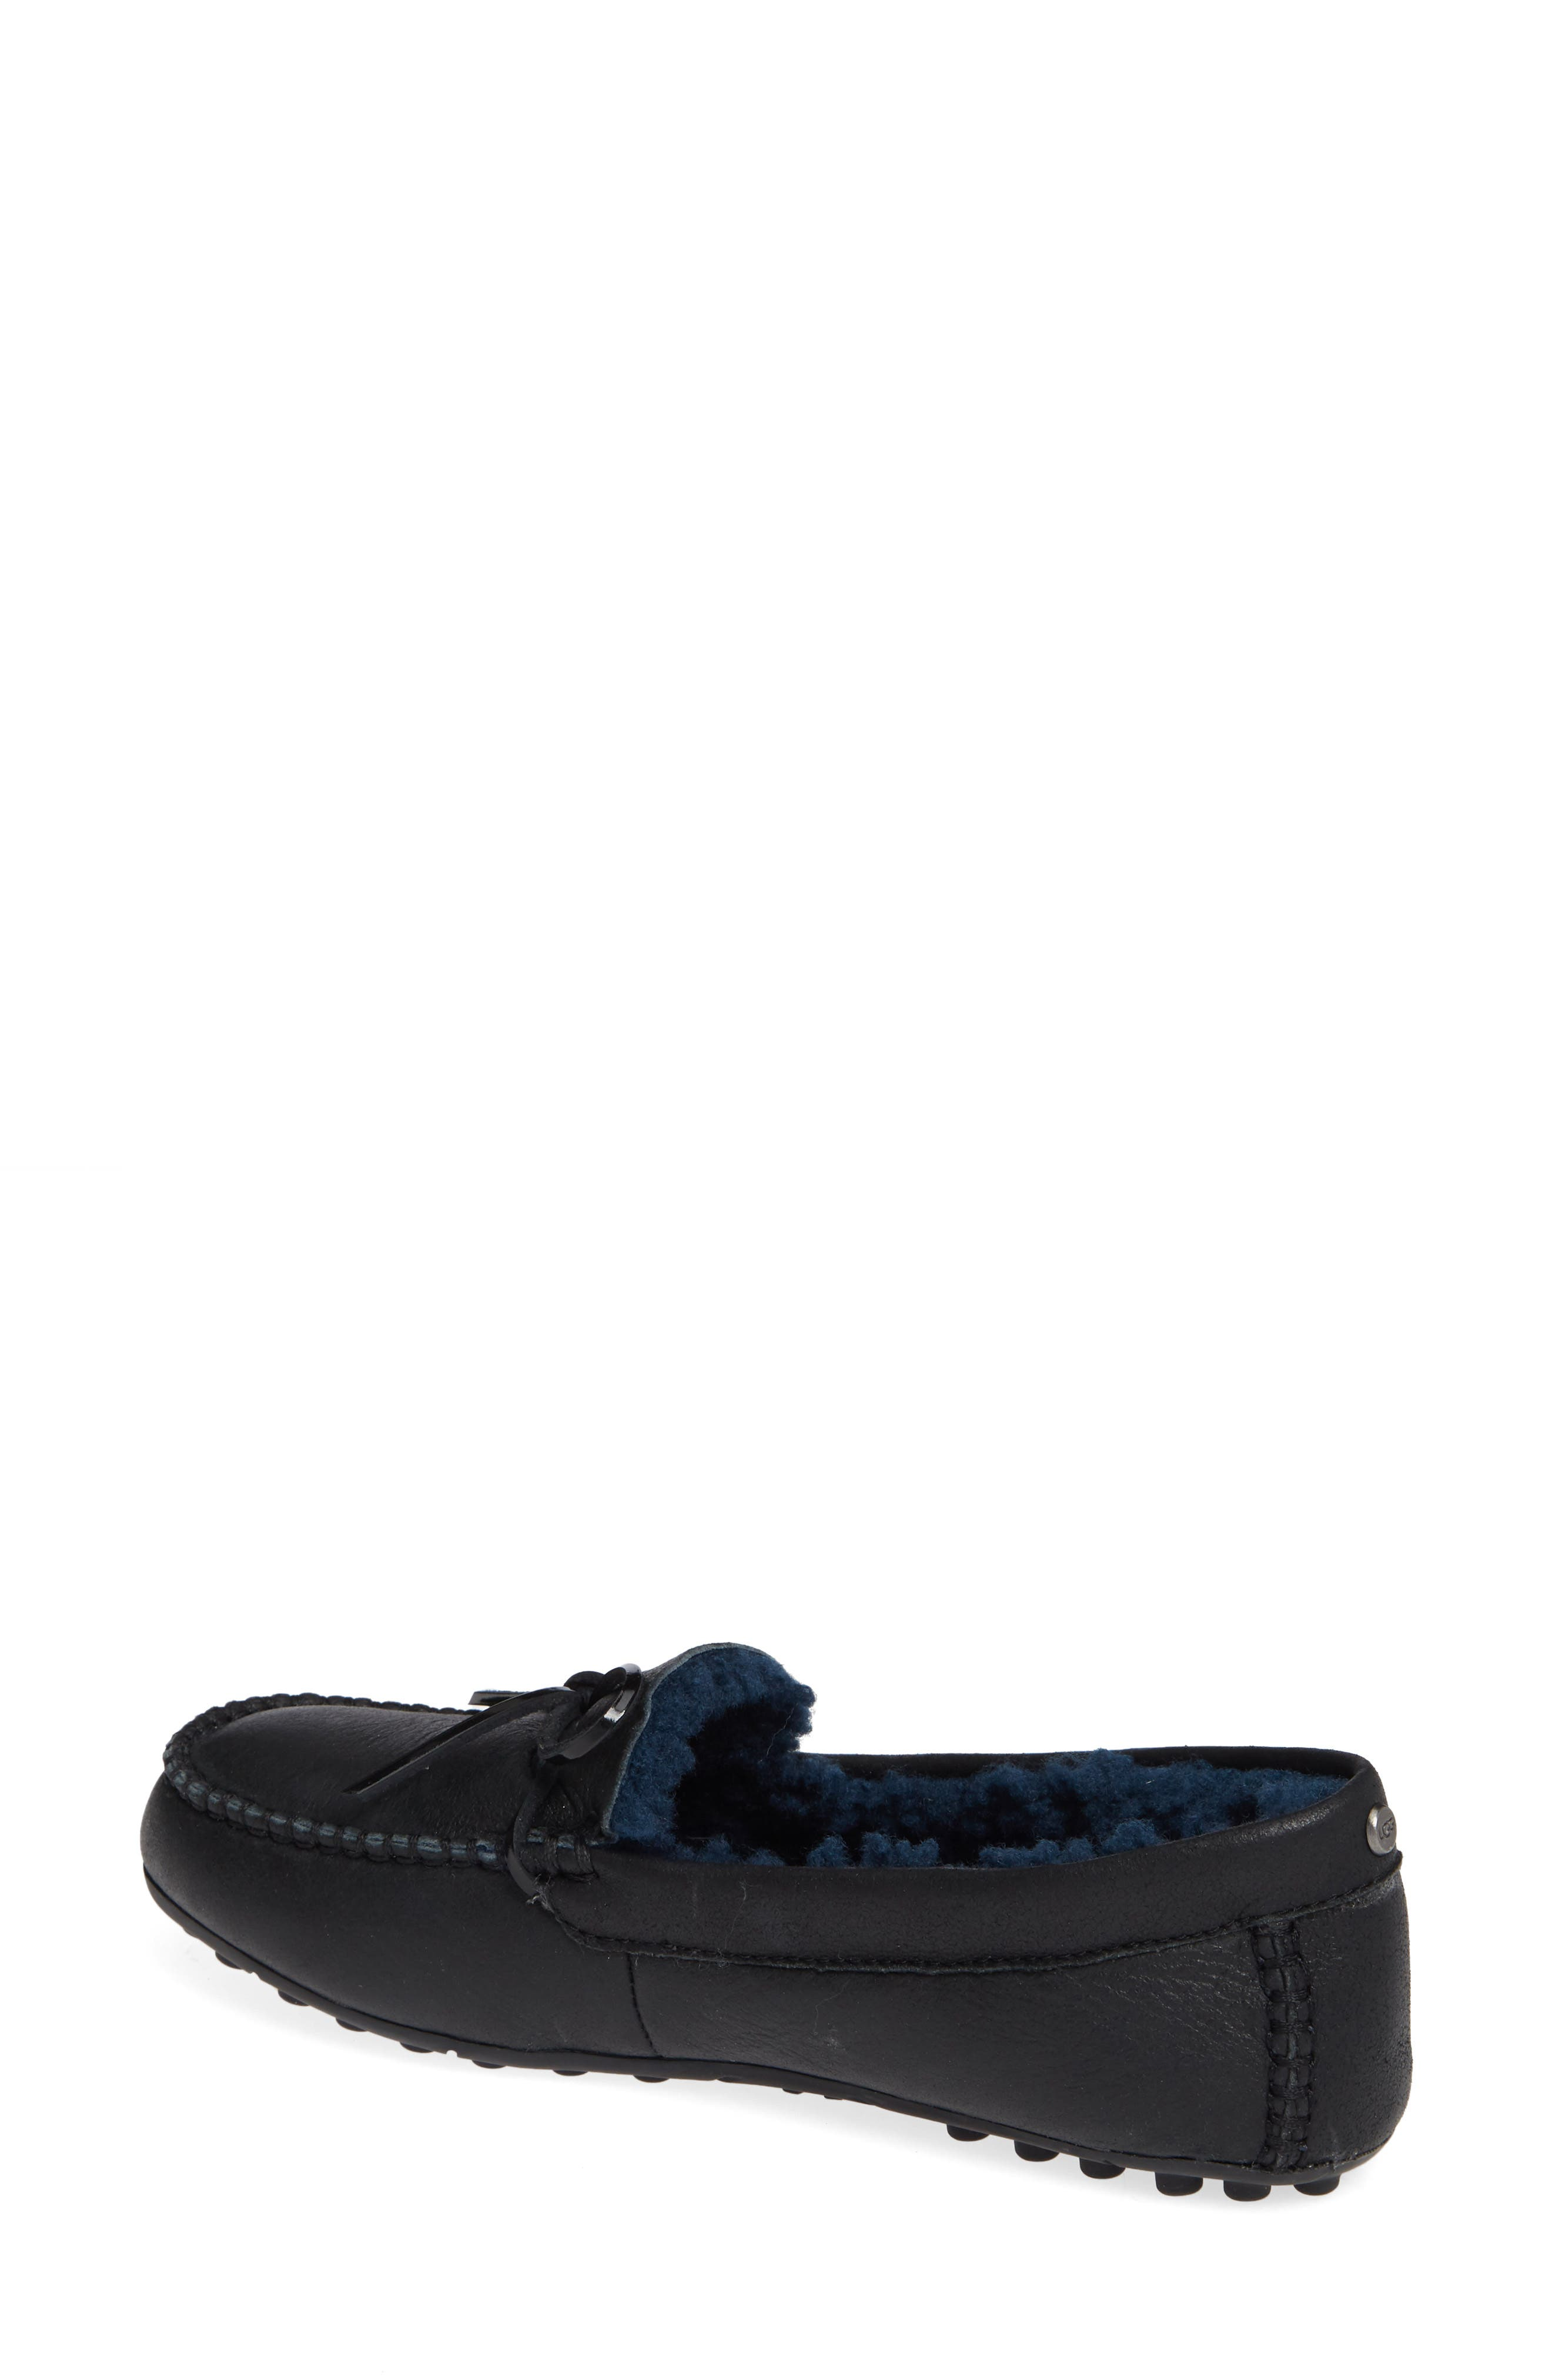 Deluxe Loafer,                             Alternate thumbnail 2, color,                             BLACK LEATHER